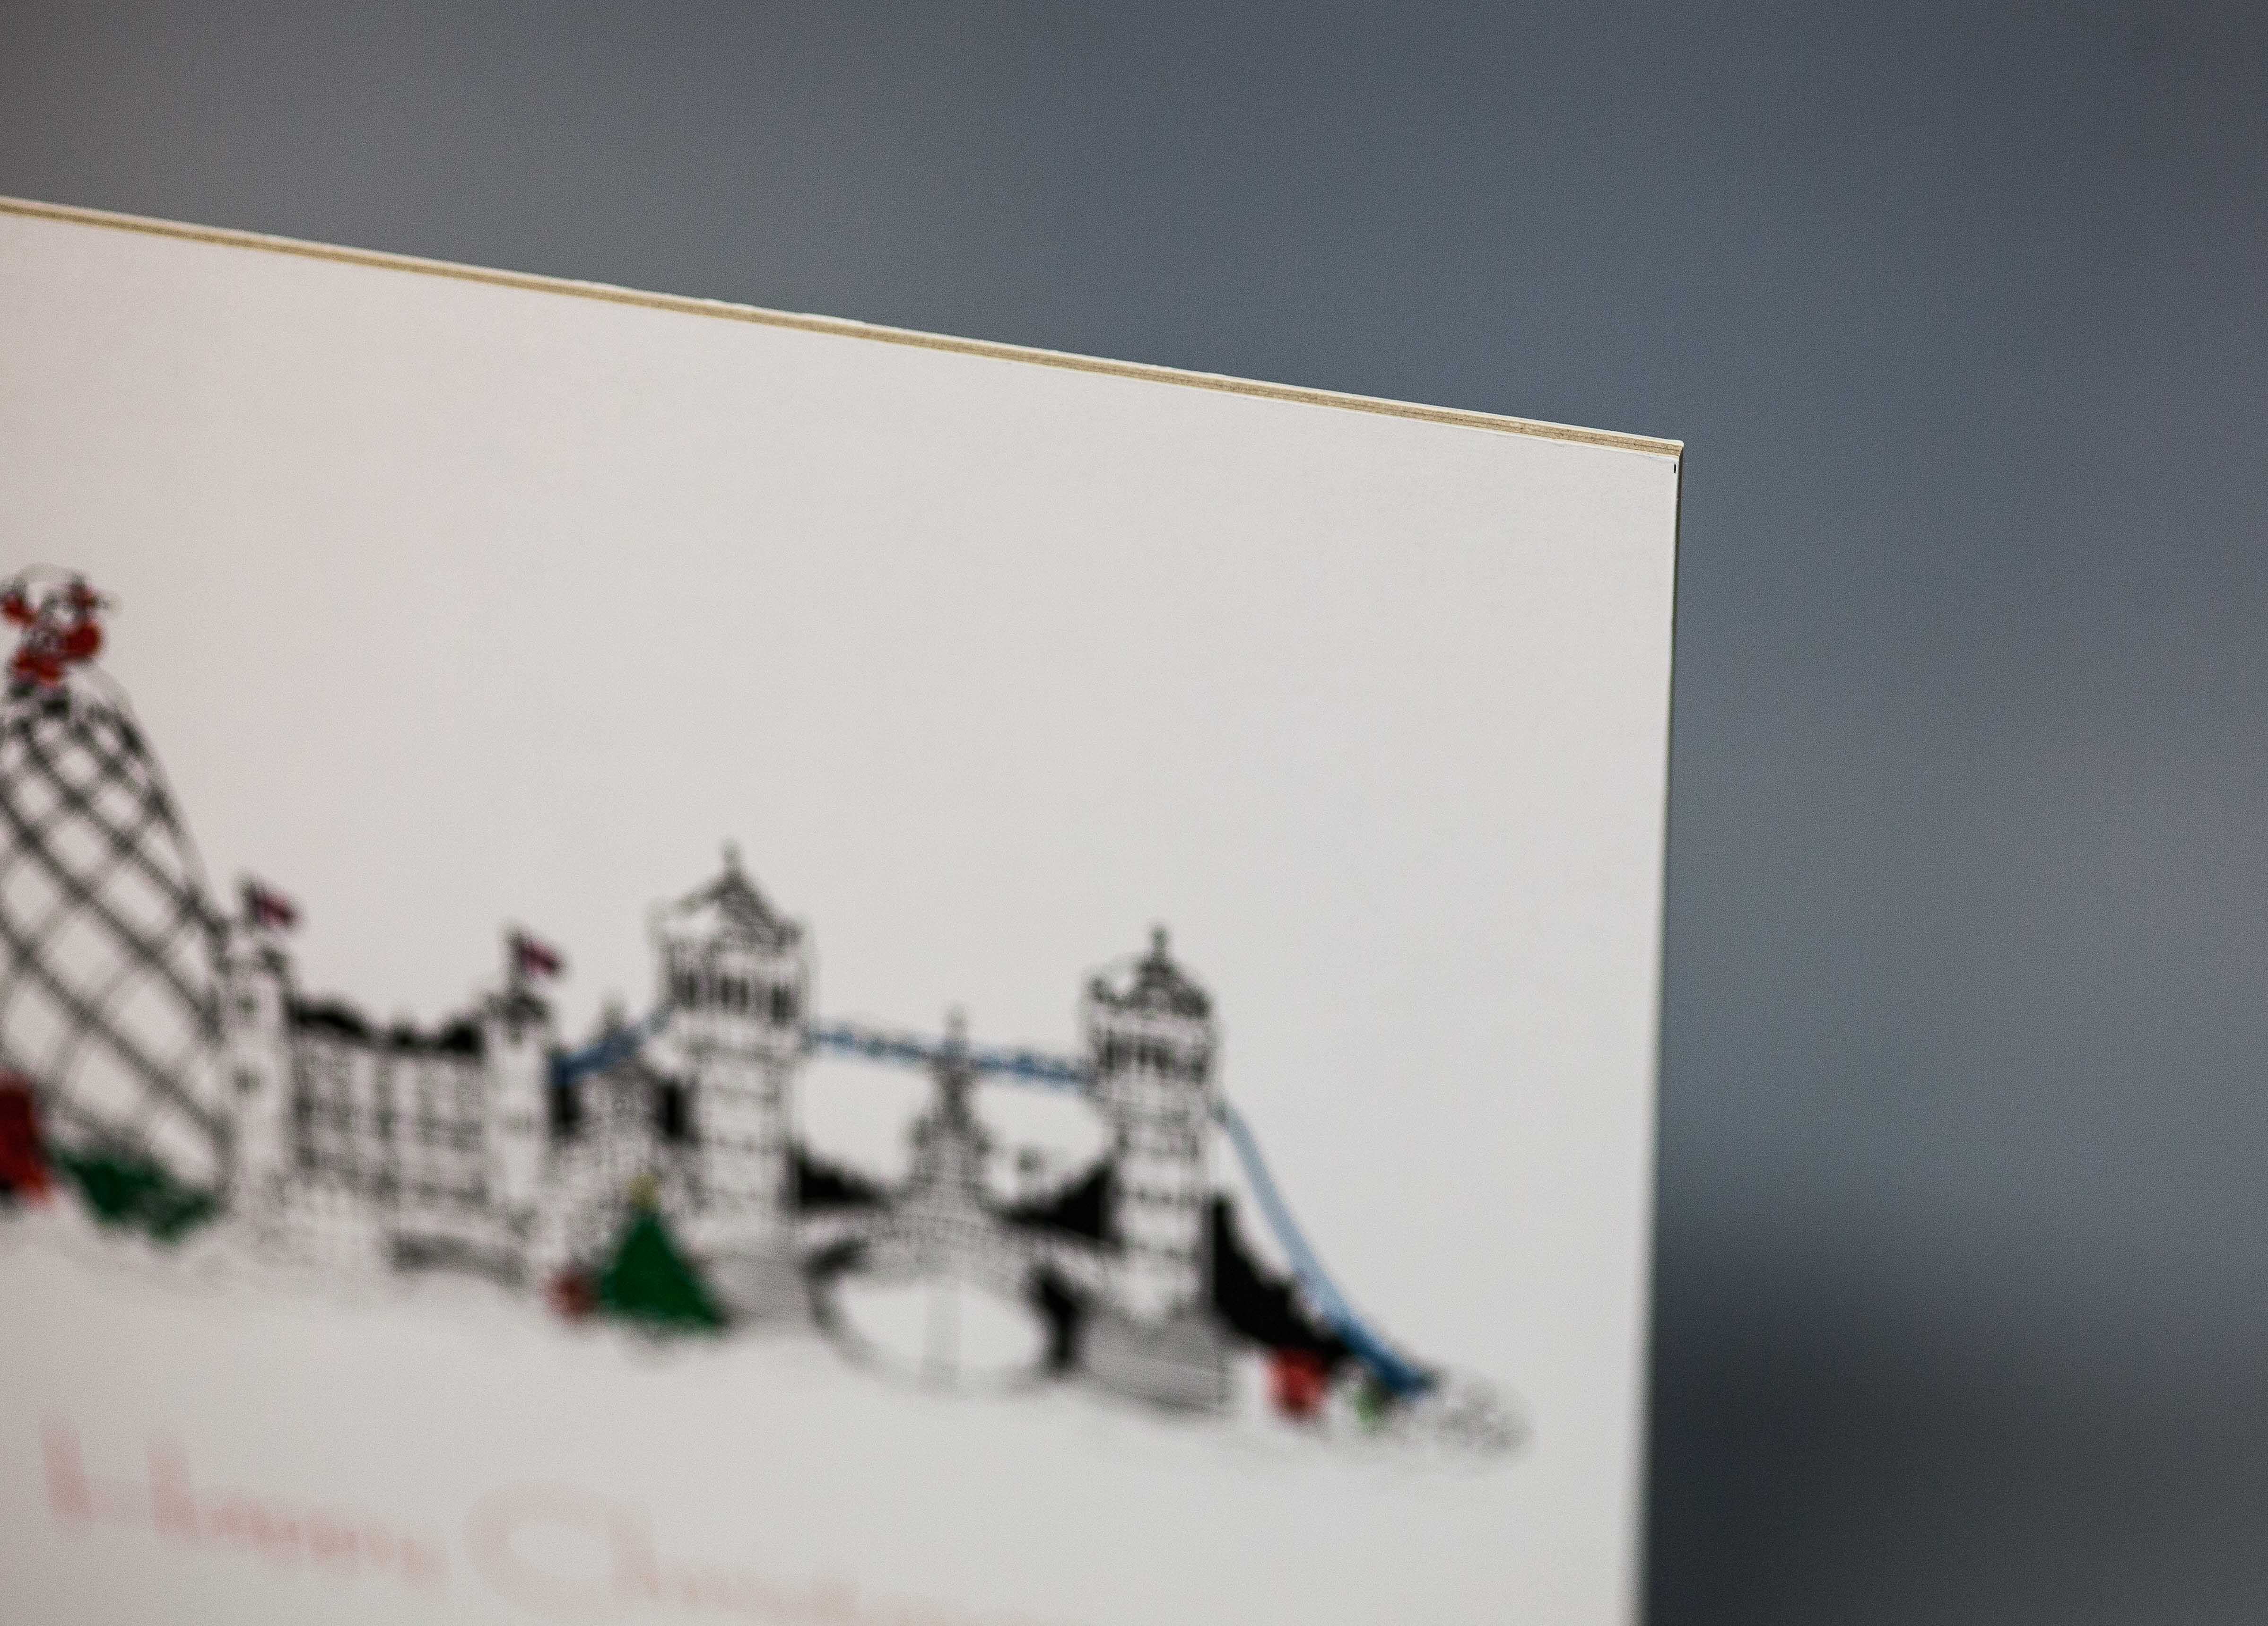 Print mounted on 2mm card